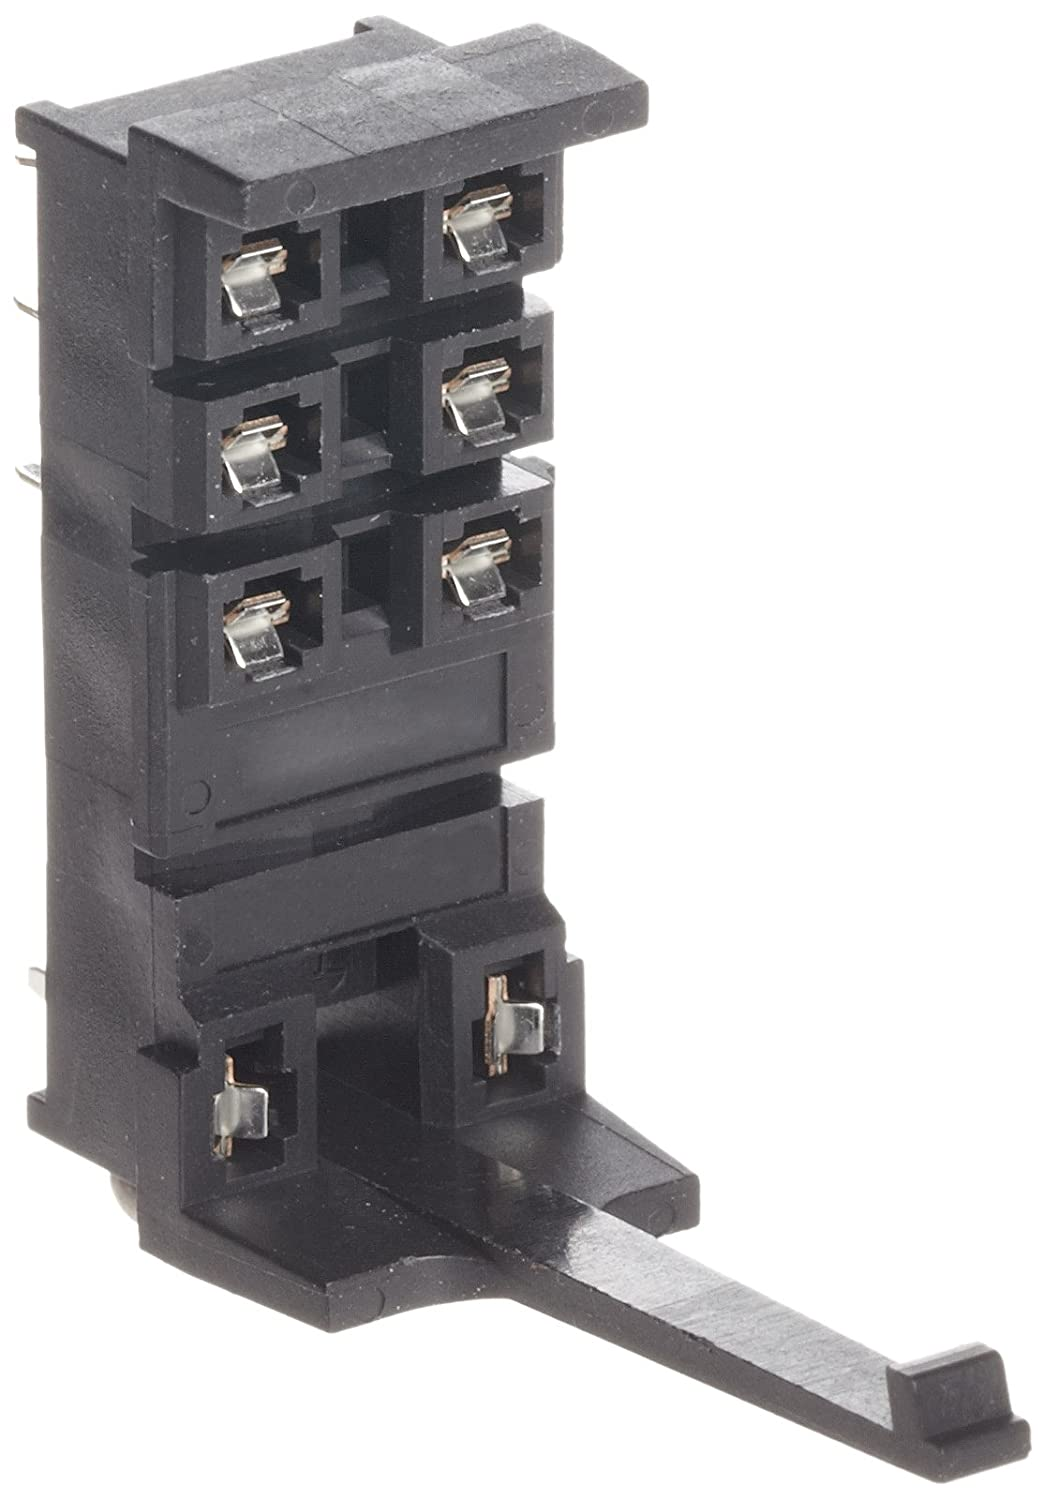 Omron P2R-087P General Purpose Socket Back Mounting PCB Terminal For Use With G2R-2-S Series Relays